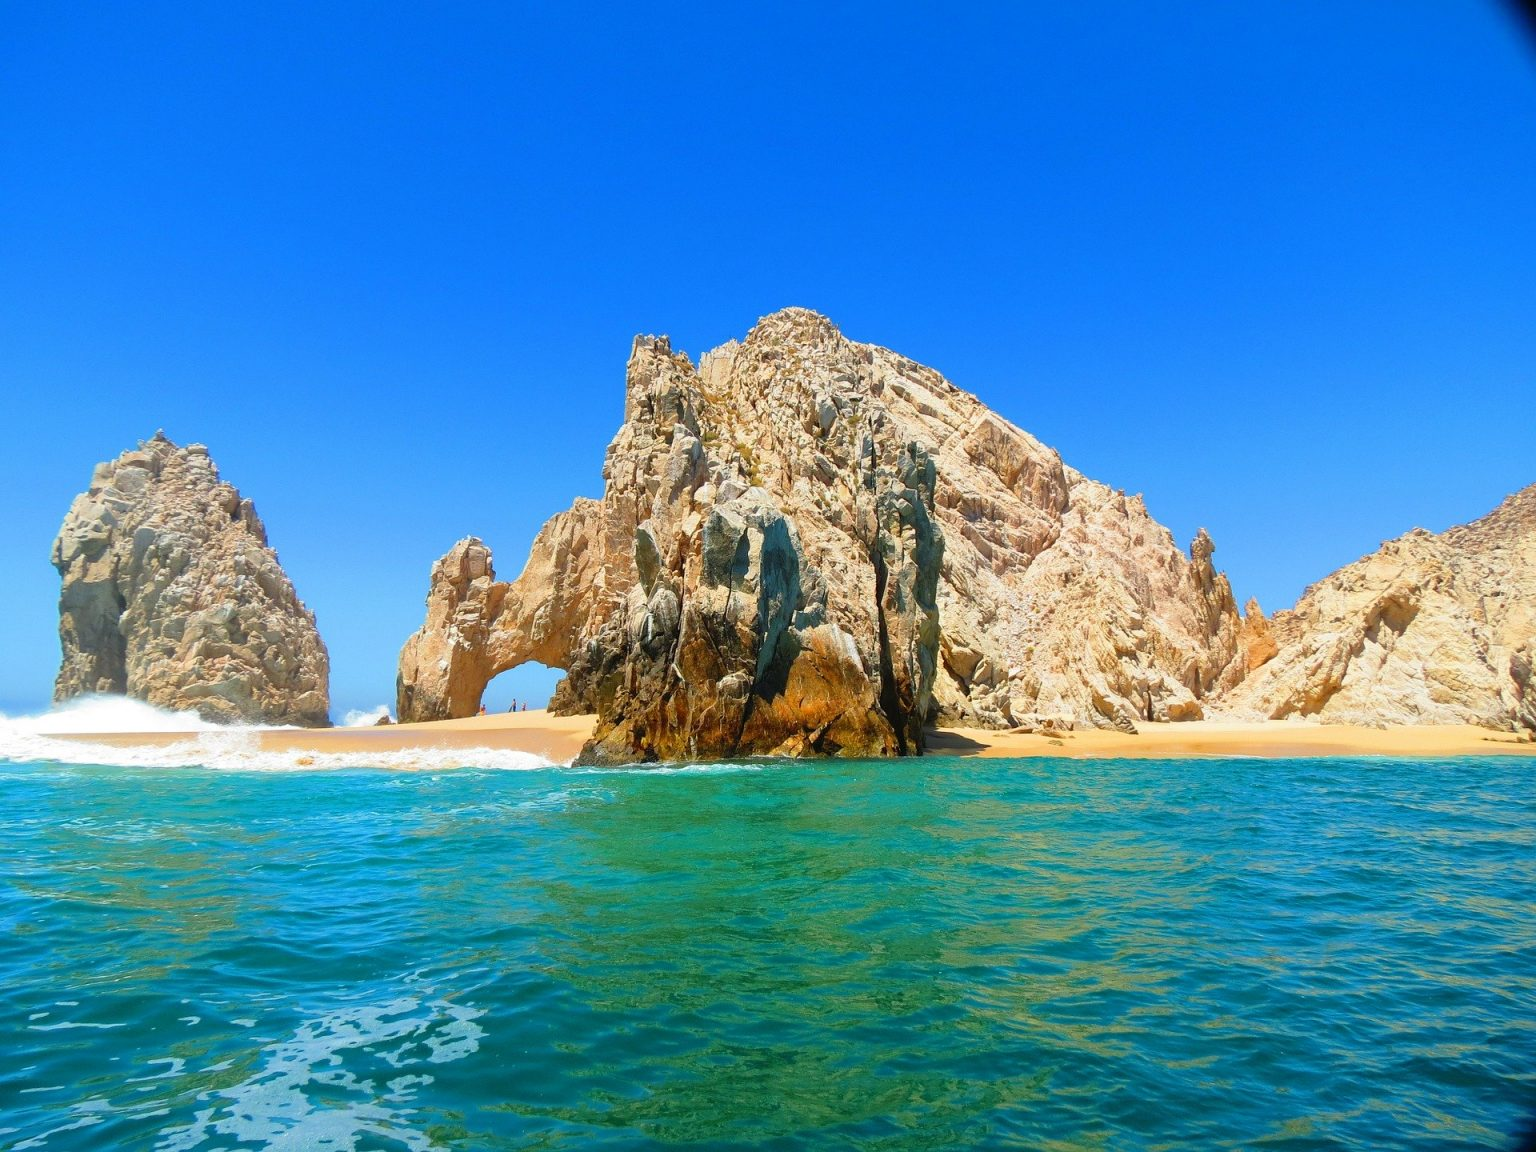 ROYAL-HOLIDAY-EL-ARCO-LOS-CABOS-1536x1152